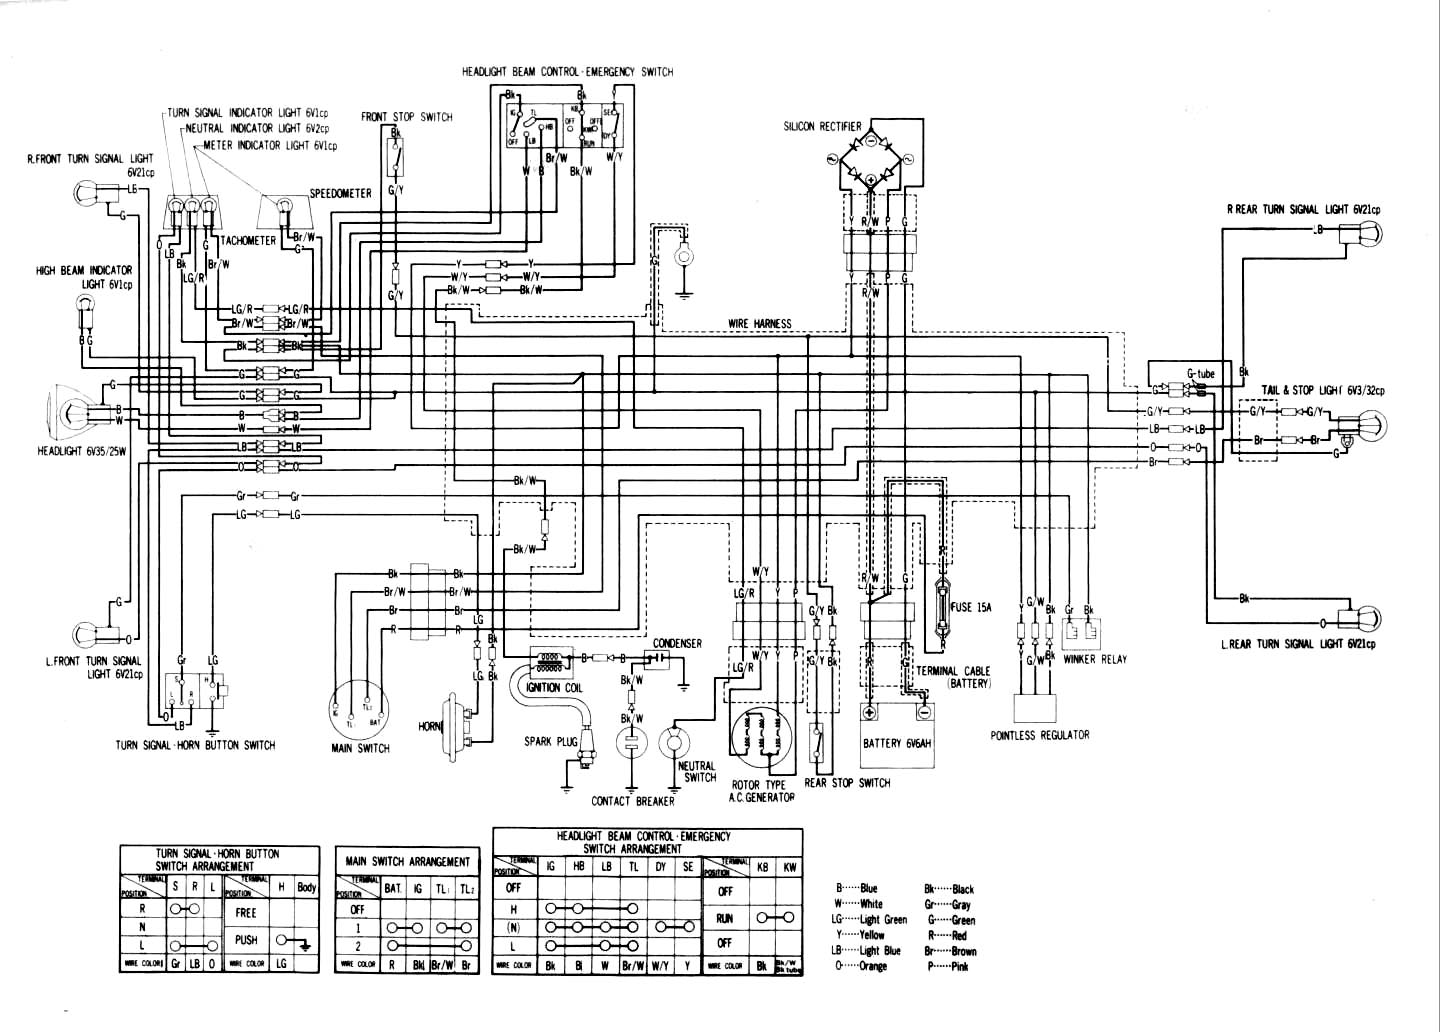 wiring diagrams rh oregonmotorcycleparts com 92 96 Honda Civic Alternater Wiring Schematics 2002 Honda Odyssey Radio Wire Diagram